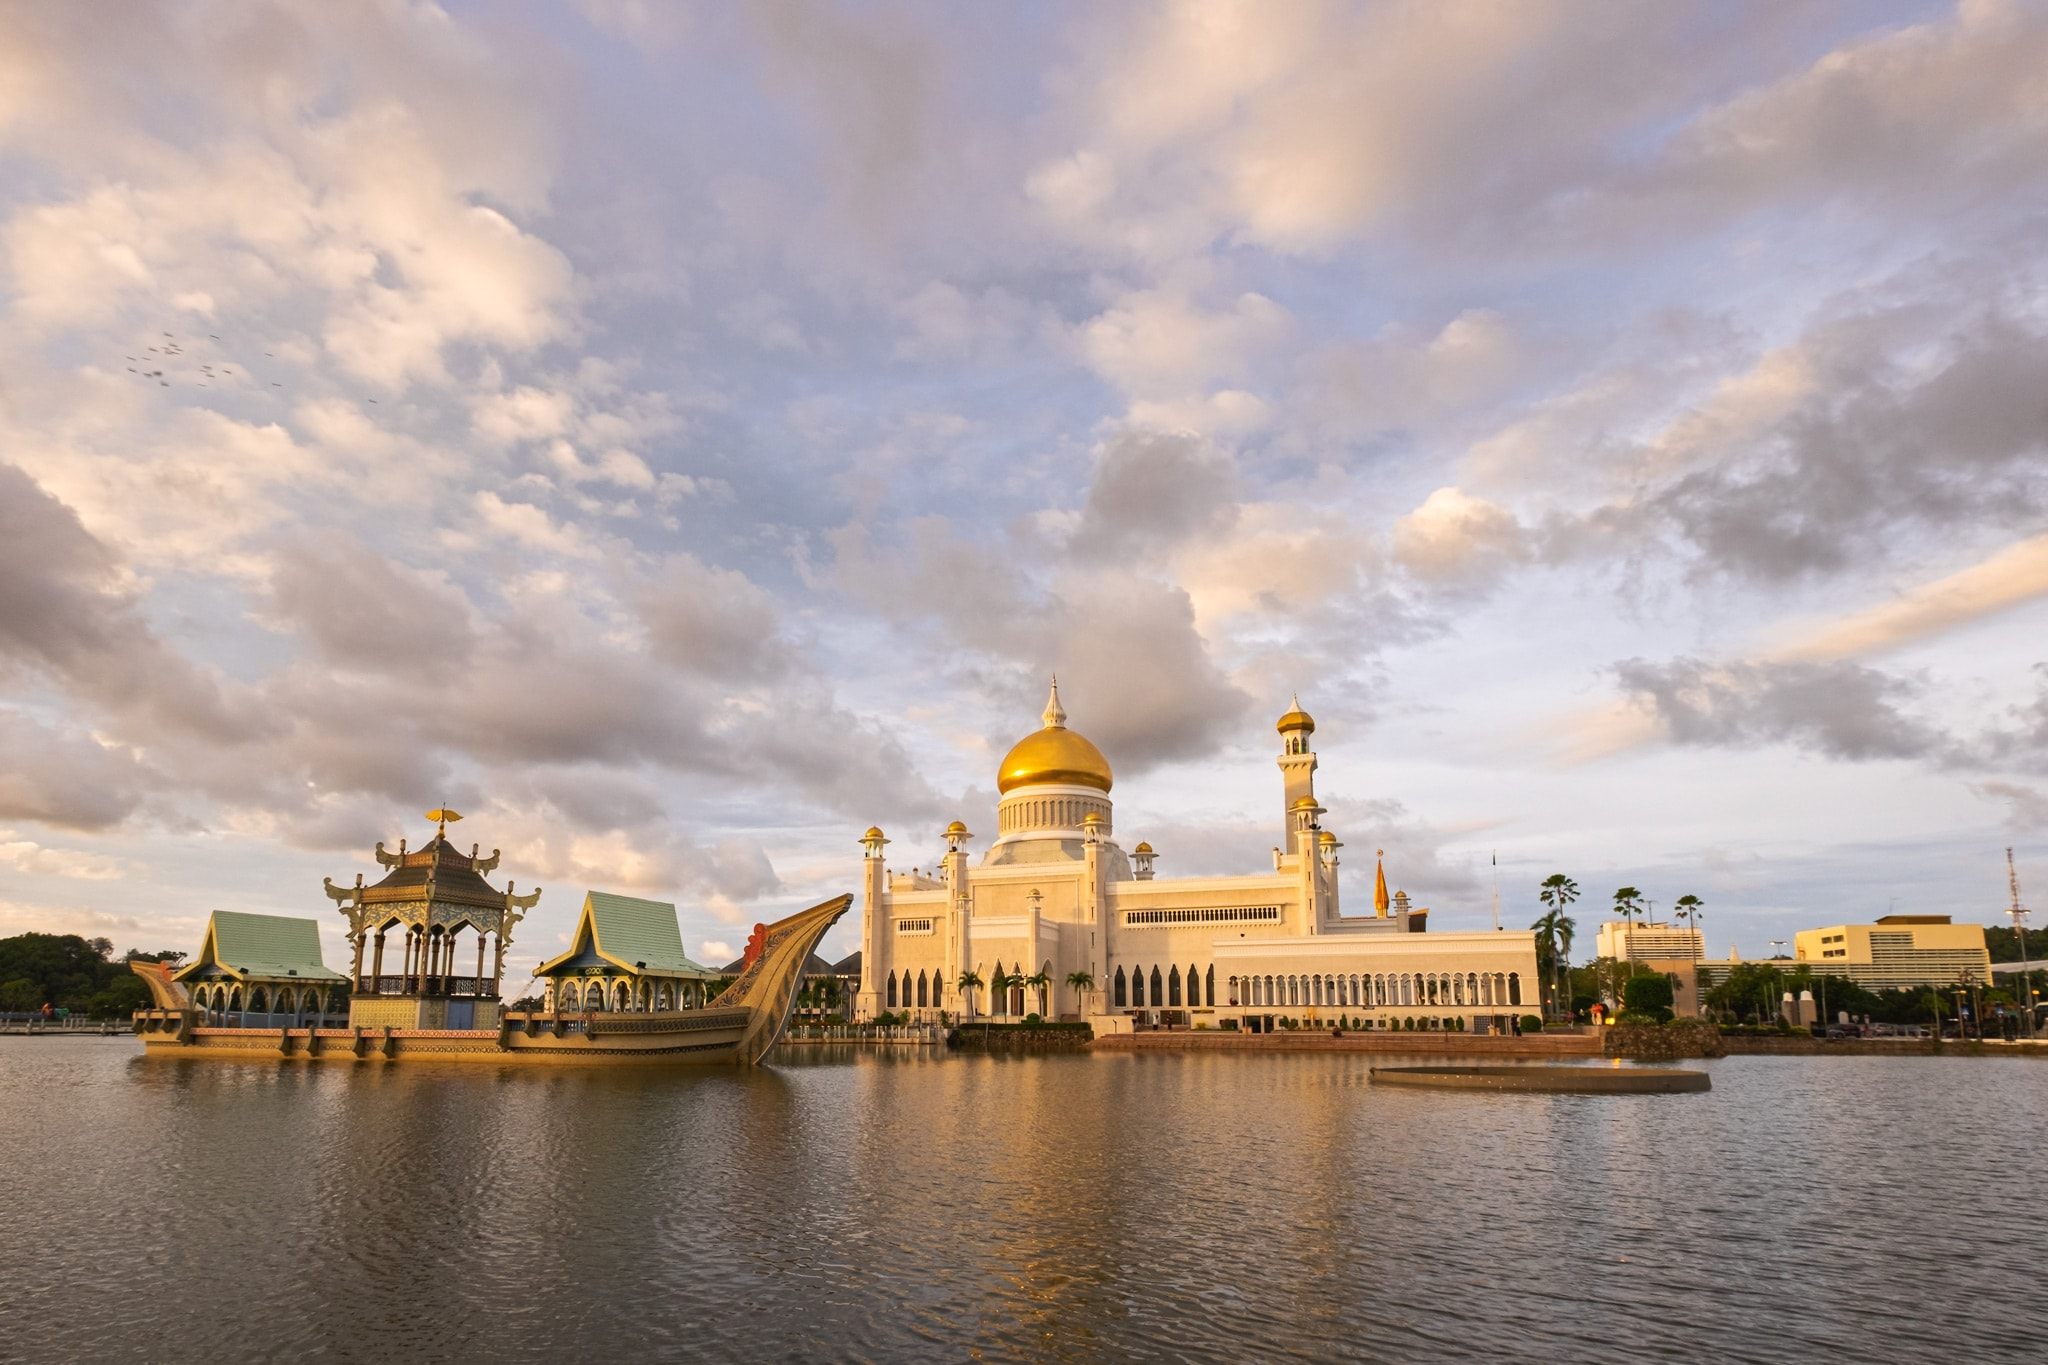 Afternoon shot of the Sultan Omar Ali Saifuddien Mosque, the royal Islamic mosque located in Bandar Seri Begawan, the capital of the Sultanate of Brunei.